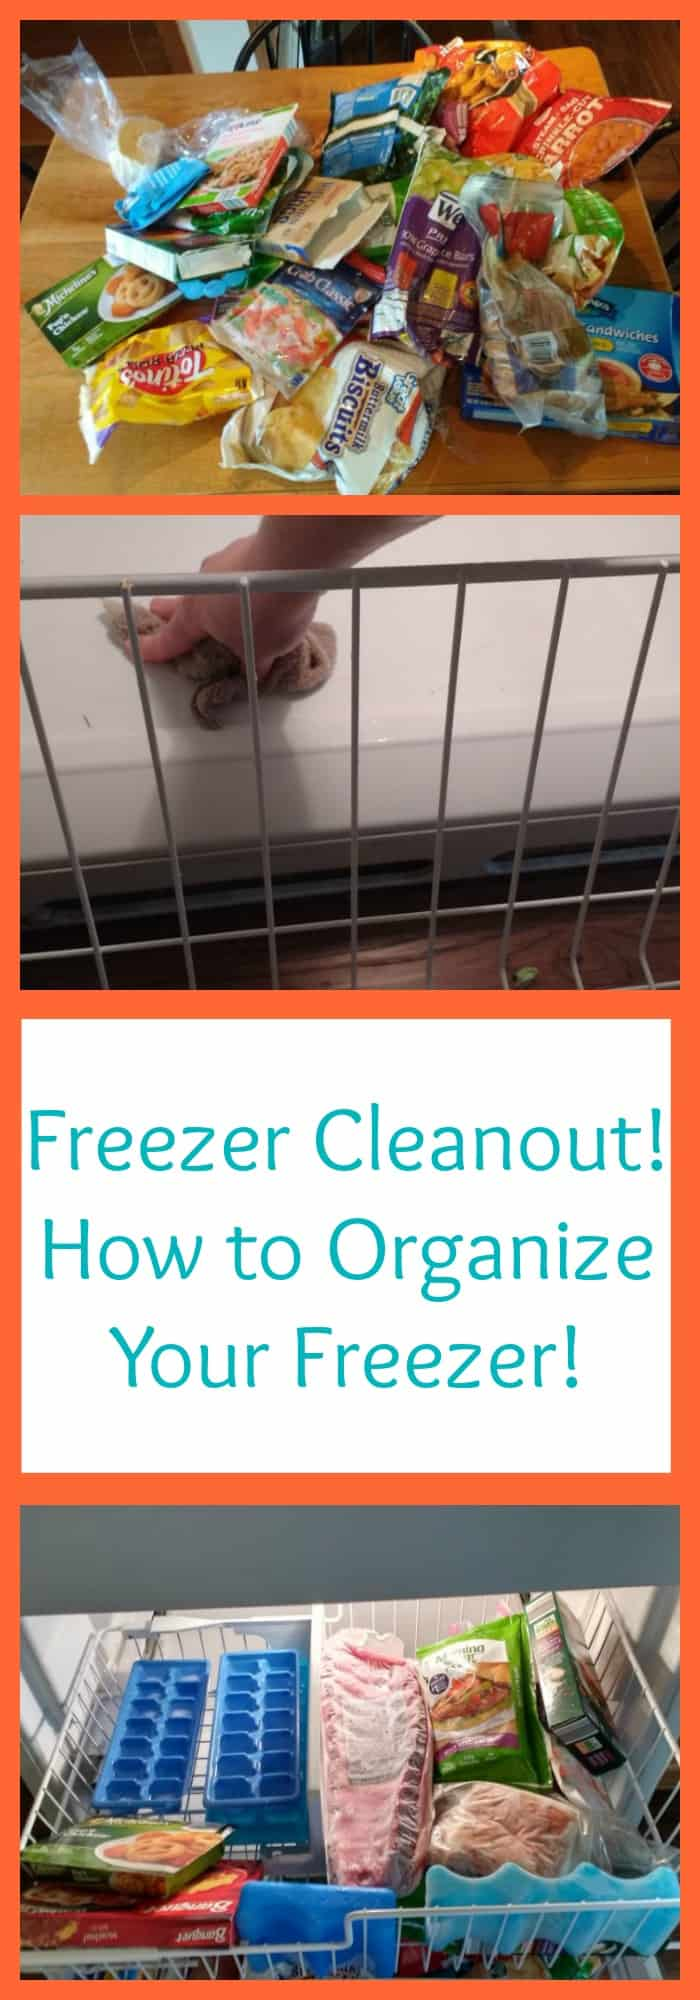 Freezer Cleanout--How to Organize Your Freezer